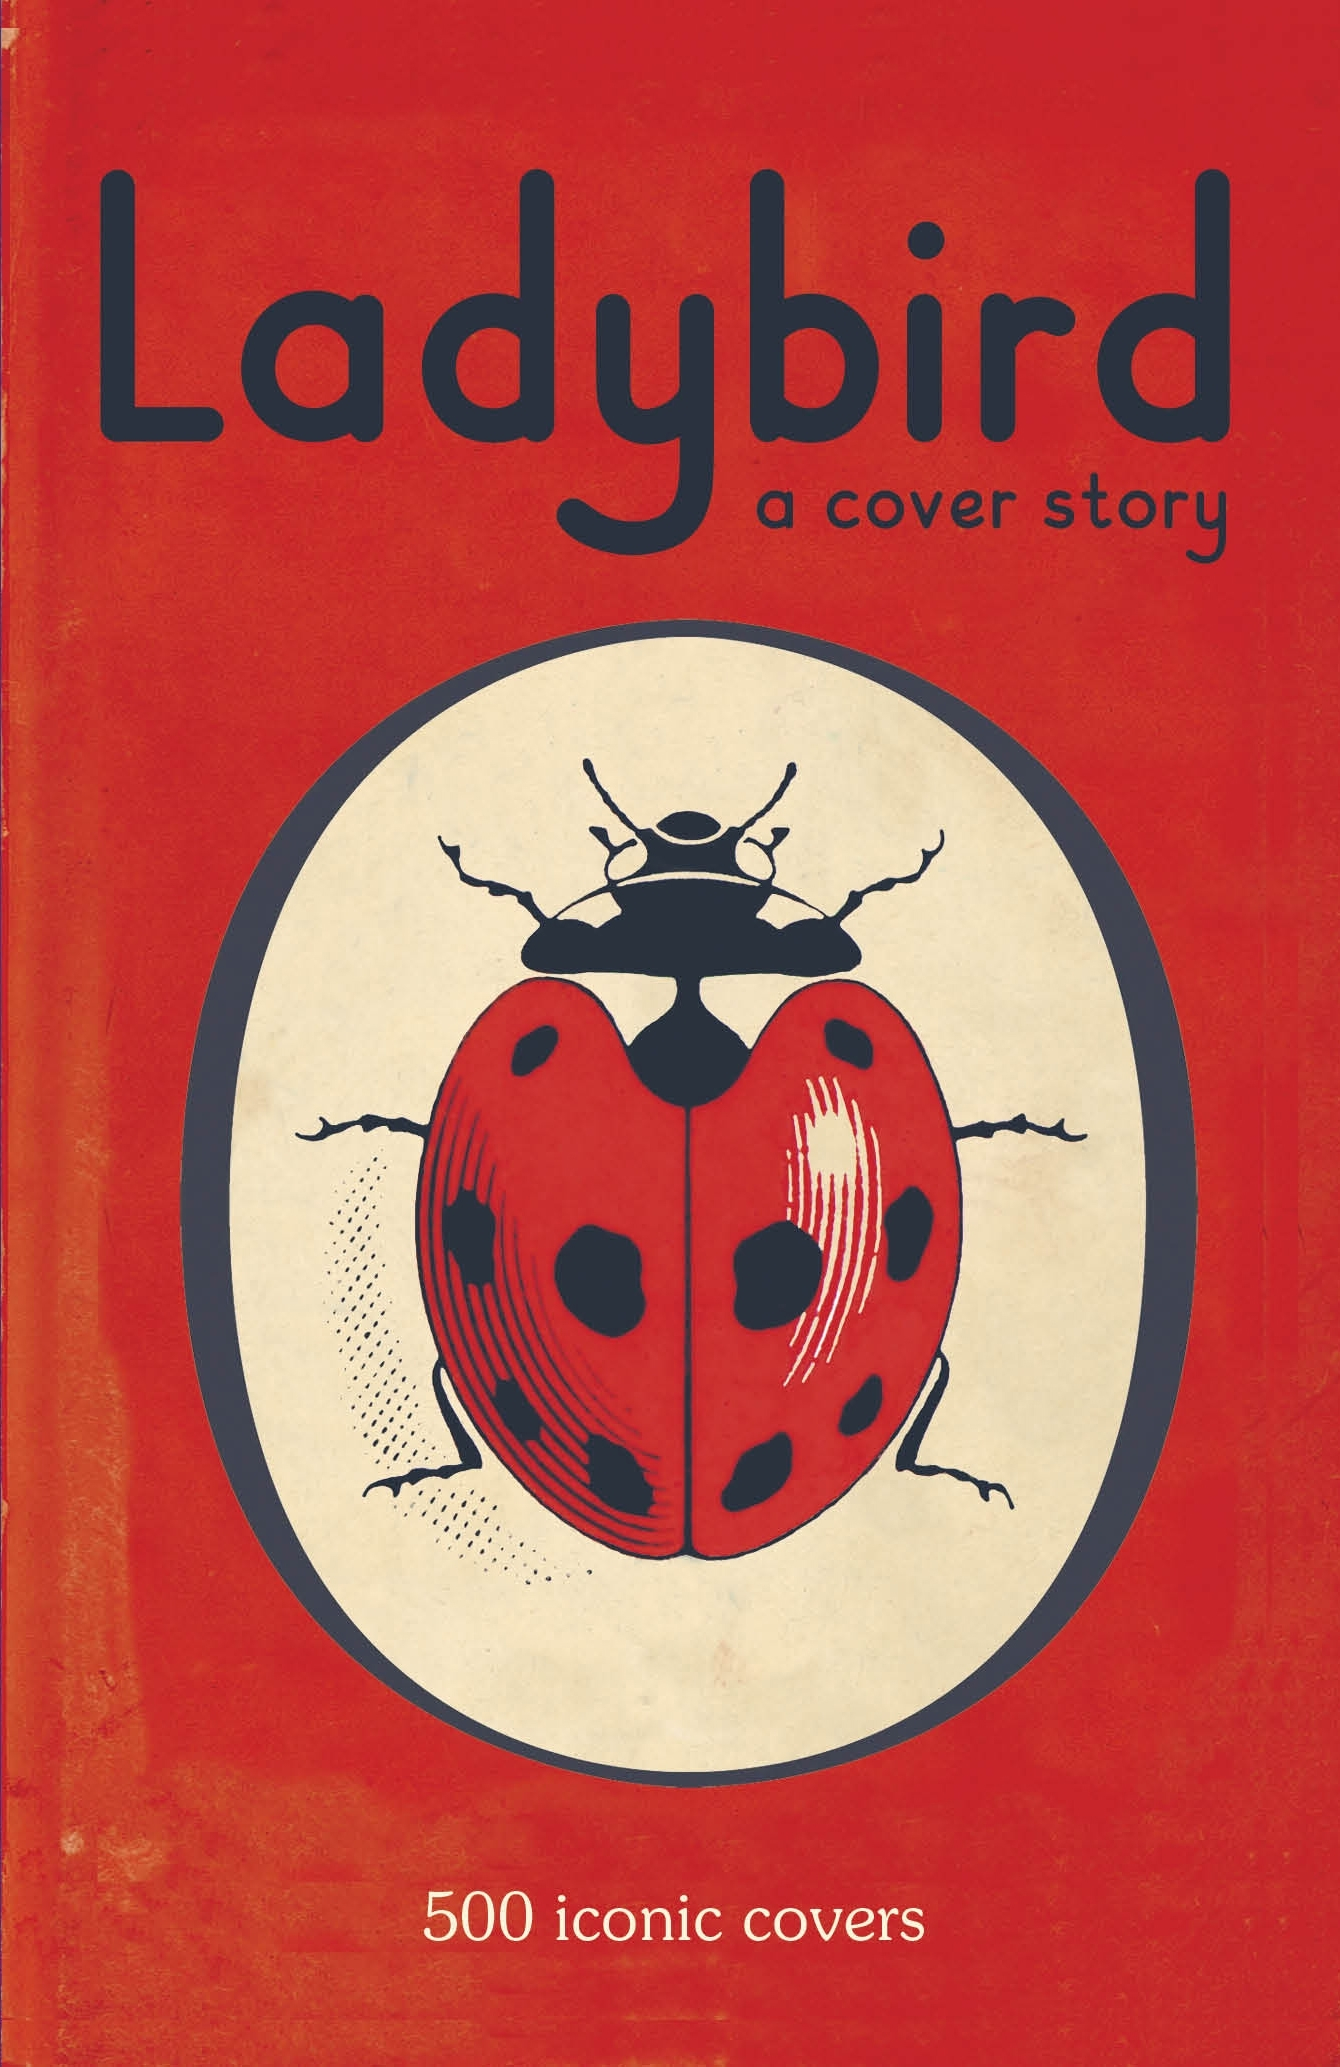 Ladybird Book Cover Pictures ~ Ladybird a cover story iconic covers from the